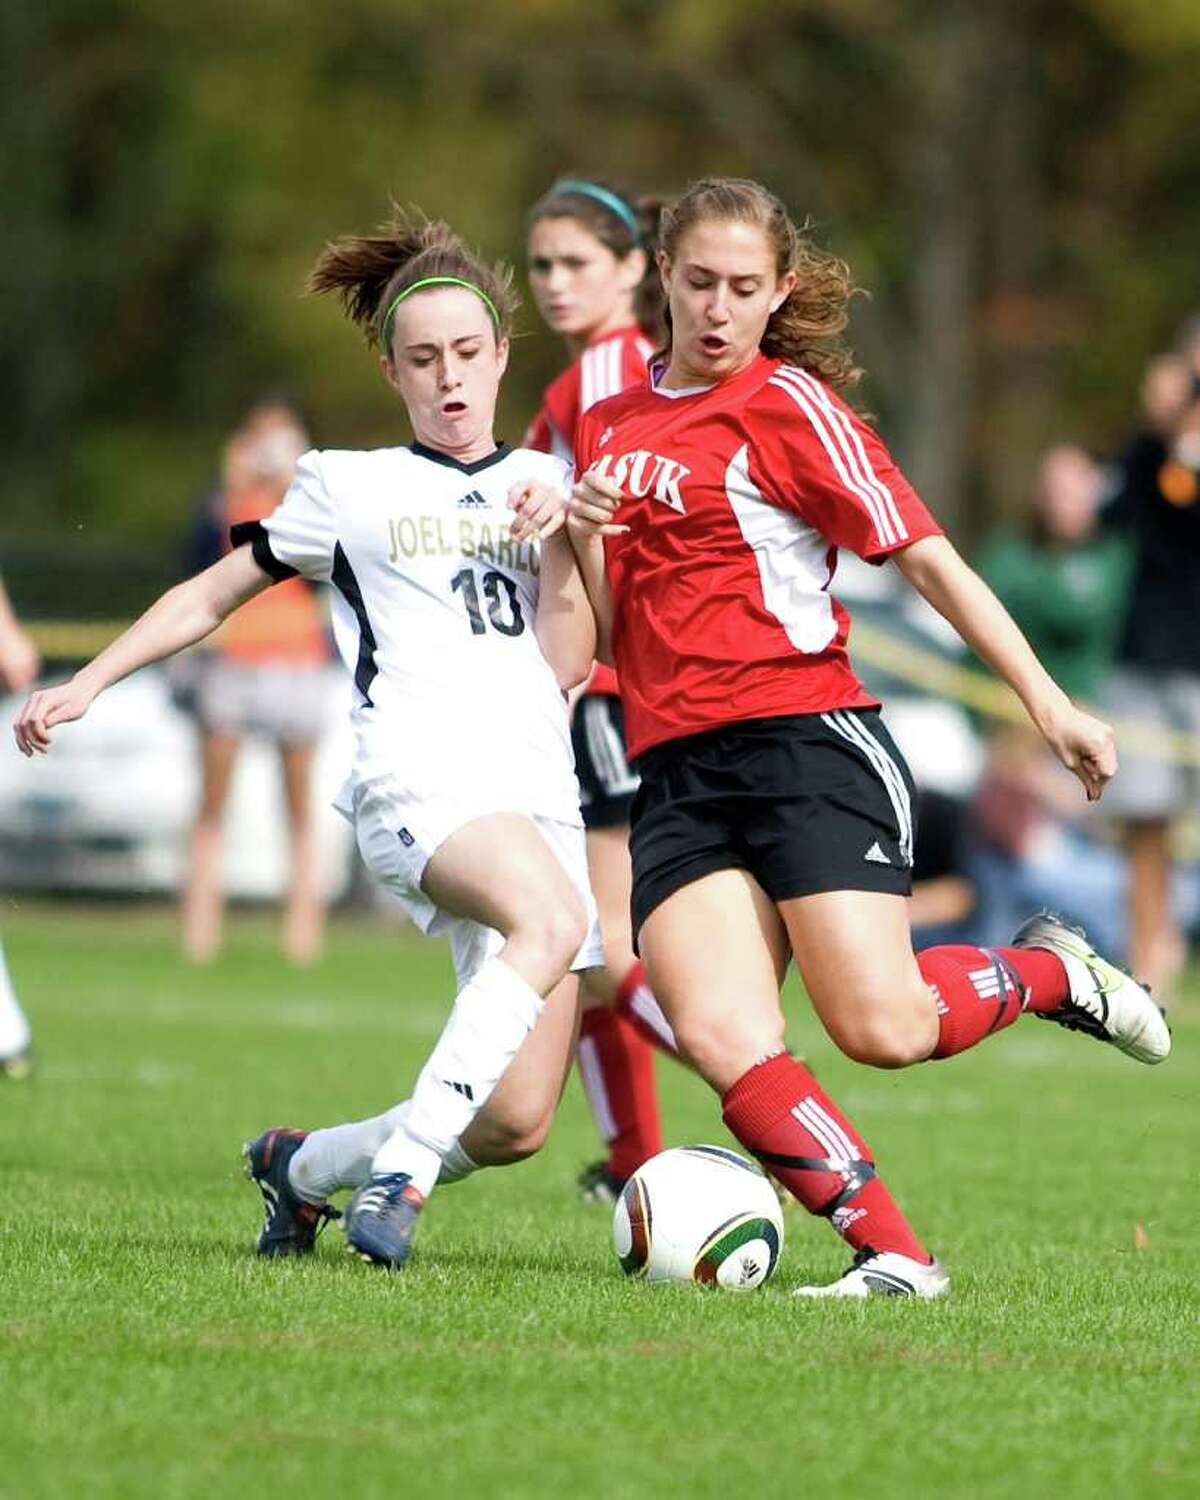 Barlow's Lilly Creighton (10) tackles the ball away from Masuk's Kelly Zazuri during their SWC match Monday at Joel Barlow High.